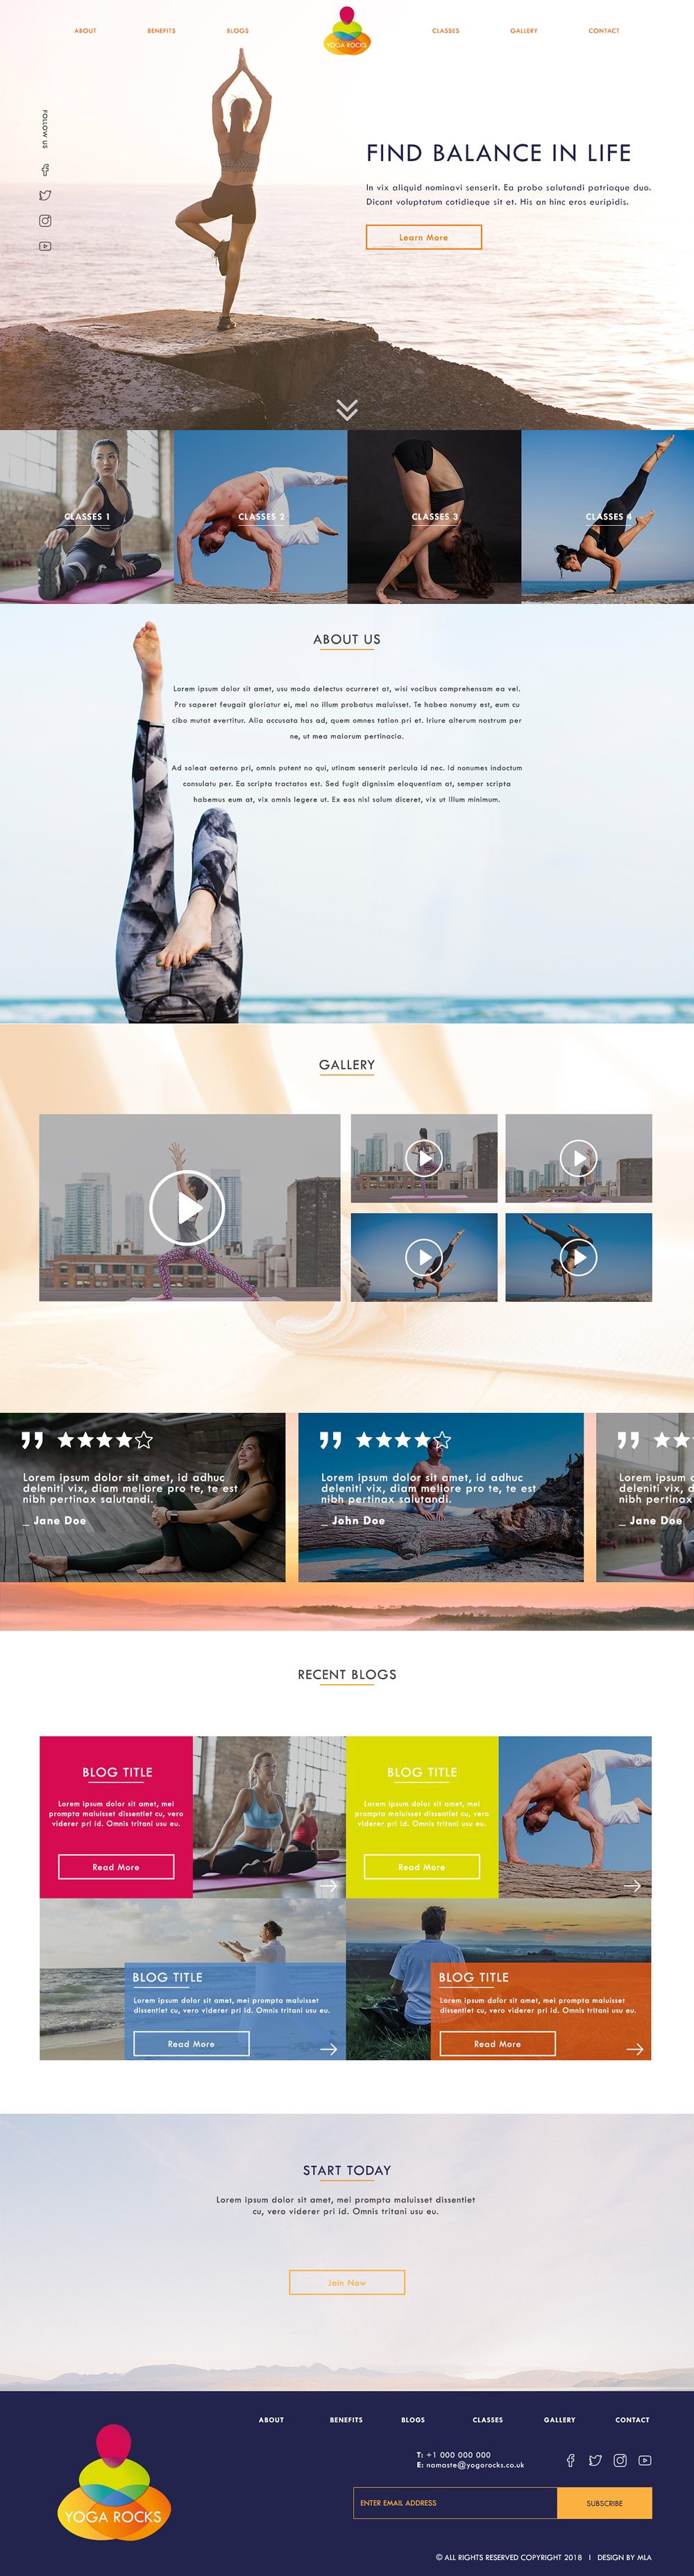 Yoga Rocks homepage website design - London Web Design - web design agency london